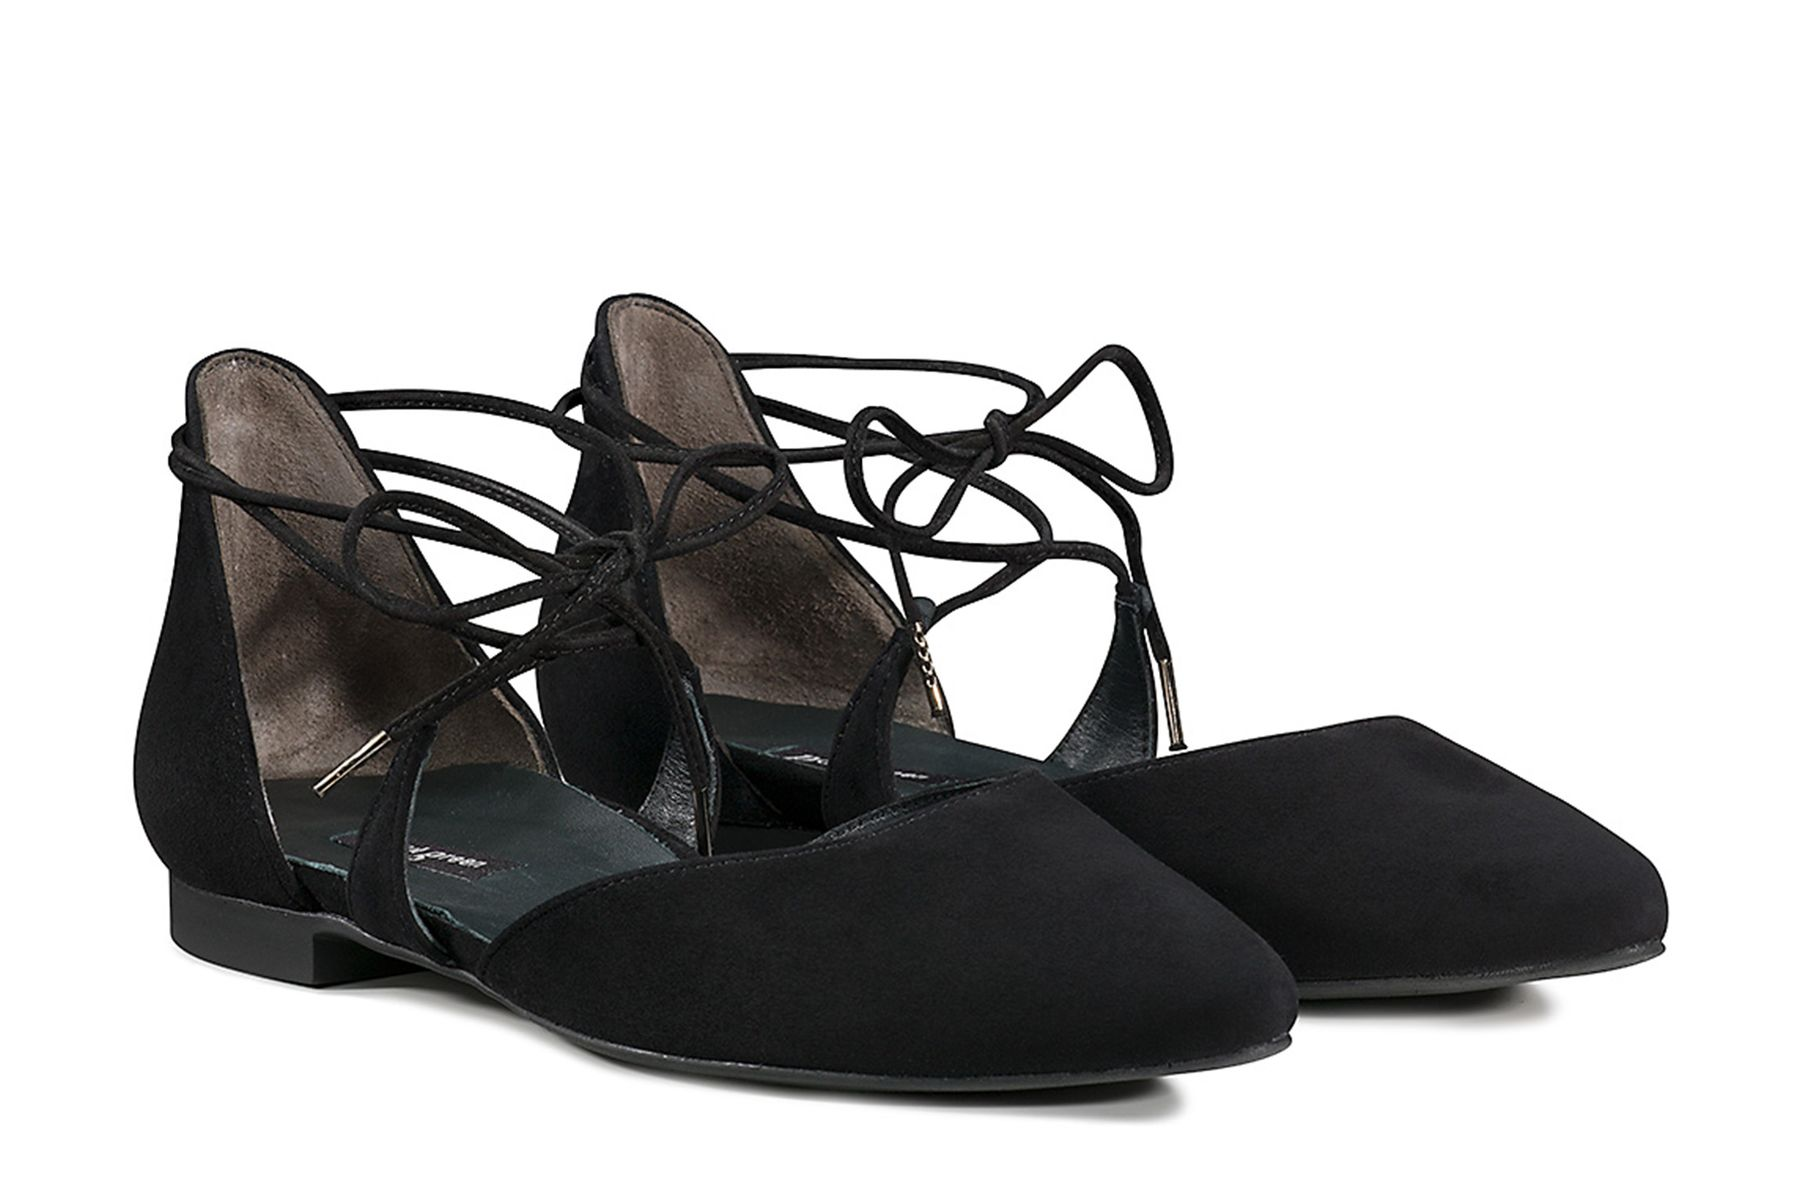 bf1e50223 Playful Lace-Up Ballerinas in Black - Paul Green